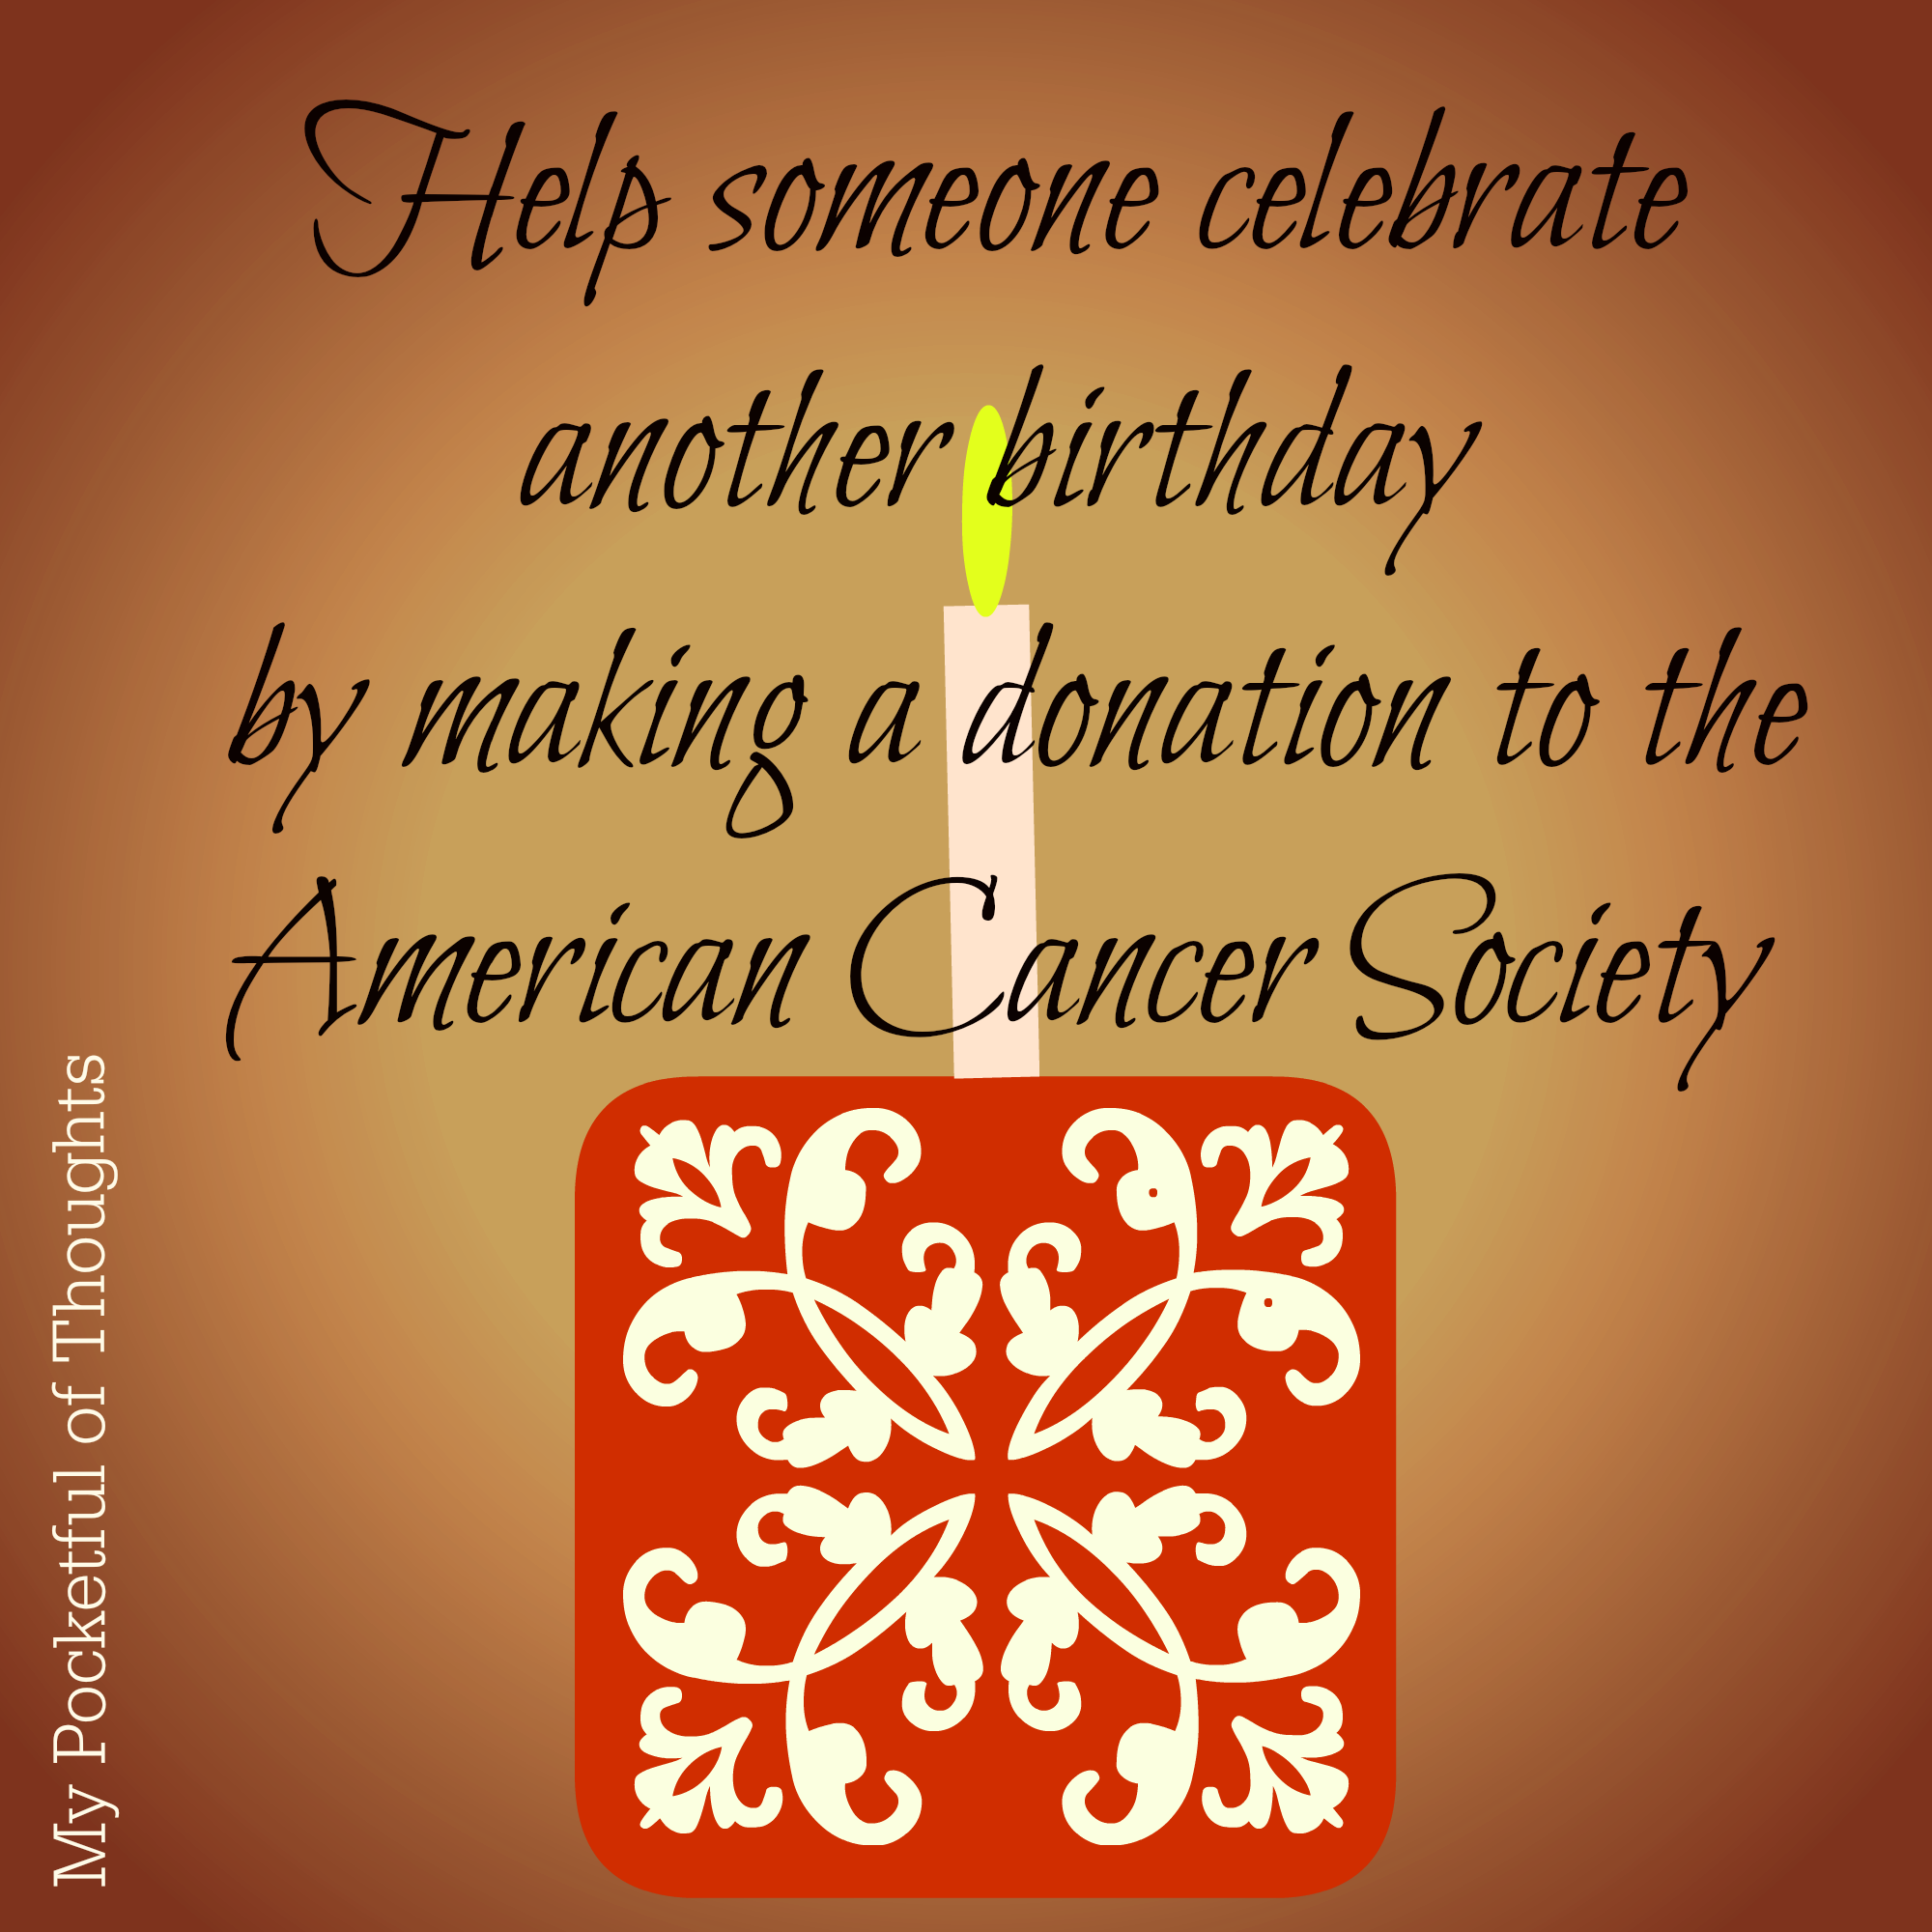 Donate to american cancer society relay for life acs donate to american cancer society relay for life acs mypocketfulofthoughts m4hsunfo